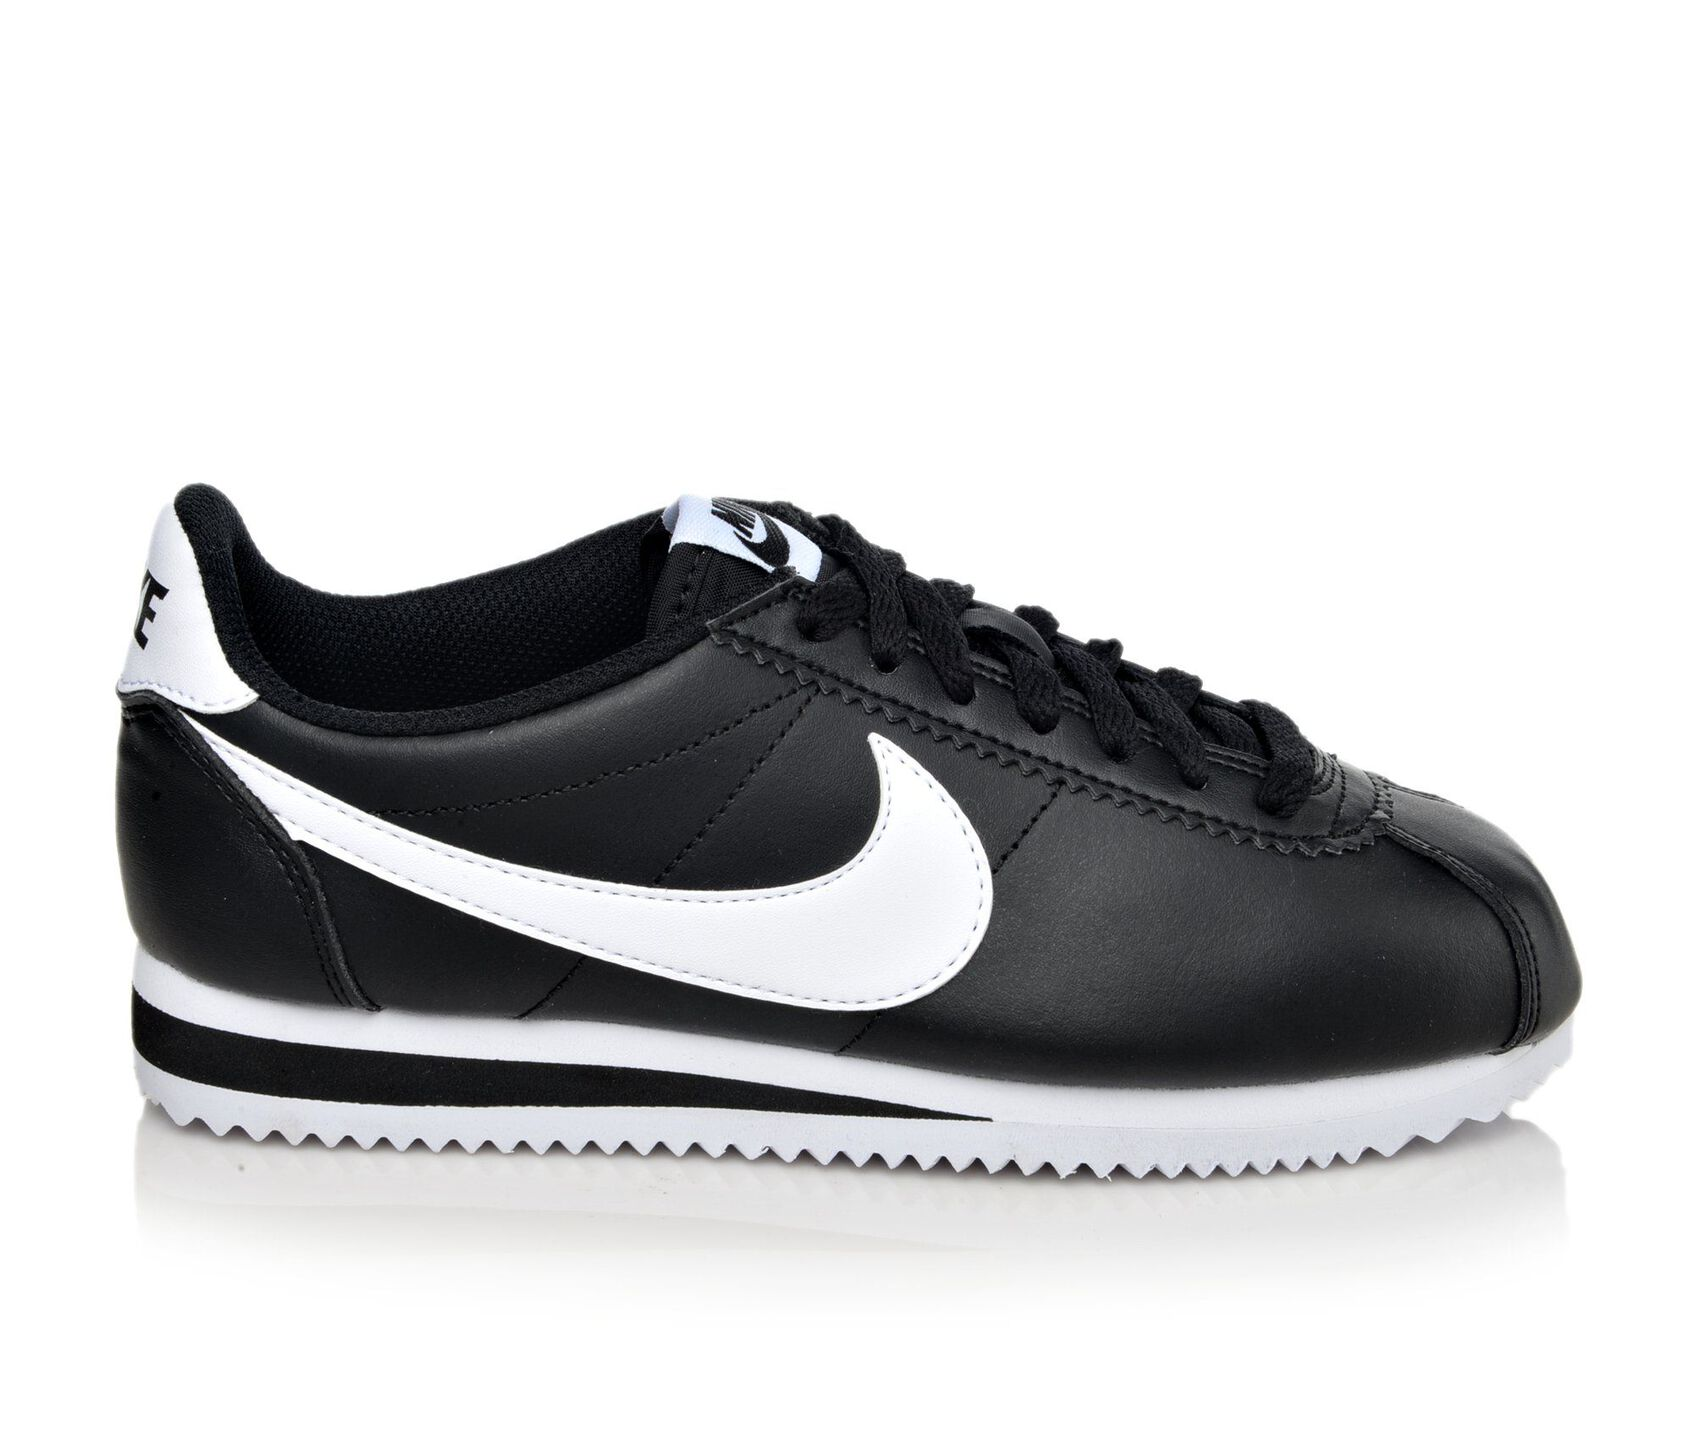 online store d6334 77988 Women's Nike Classic Cortez Leather Sneakers